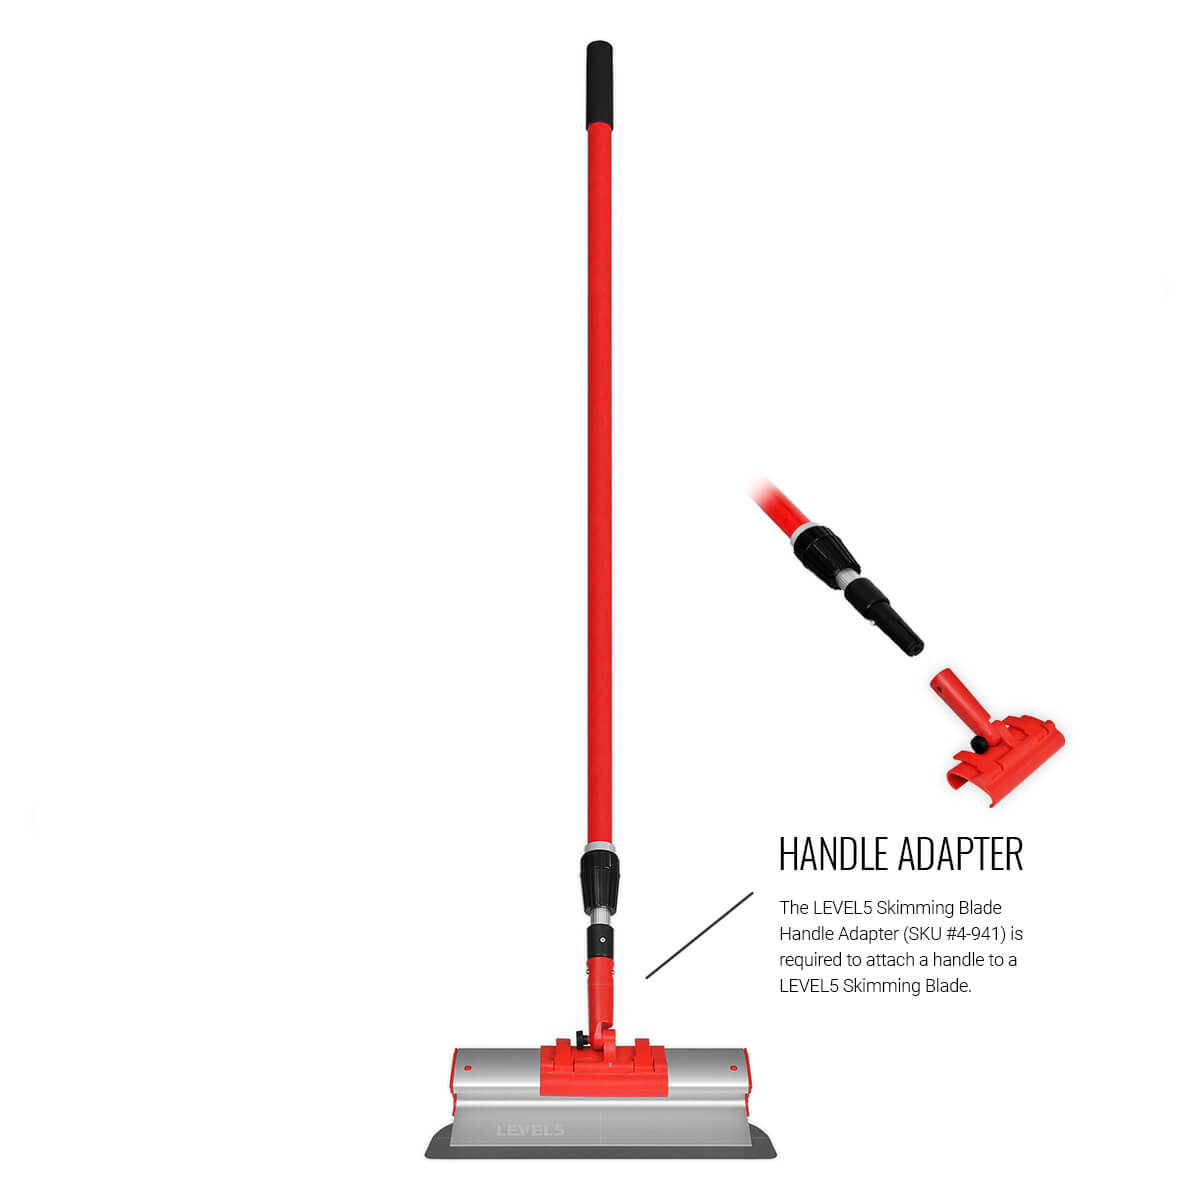 A handle adapter is required to attach an extendable handle to any LEVEL5 Skimming Blade.